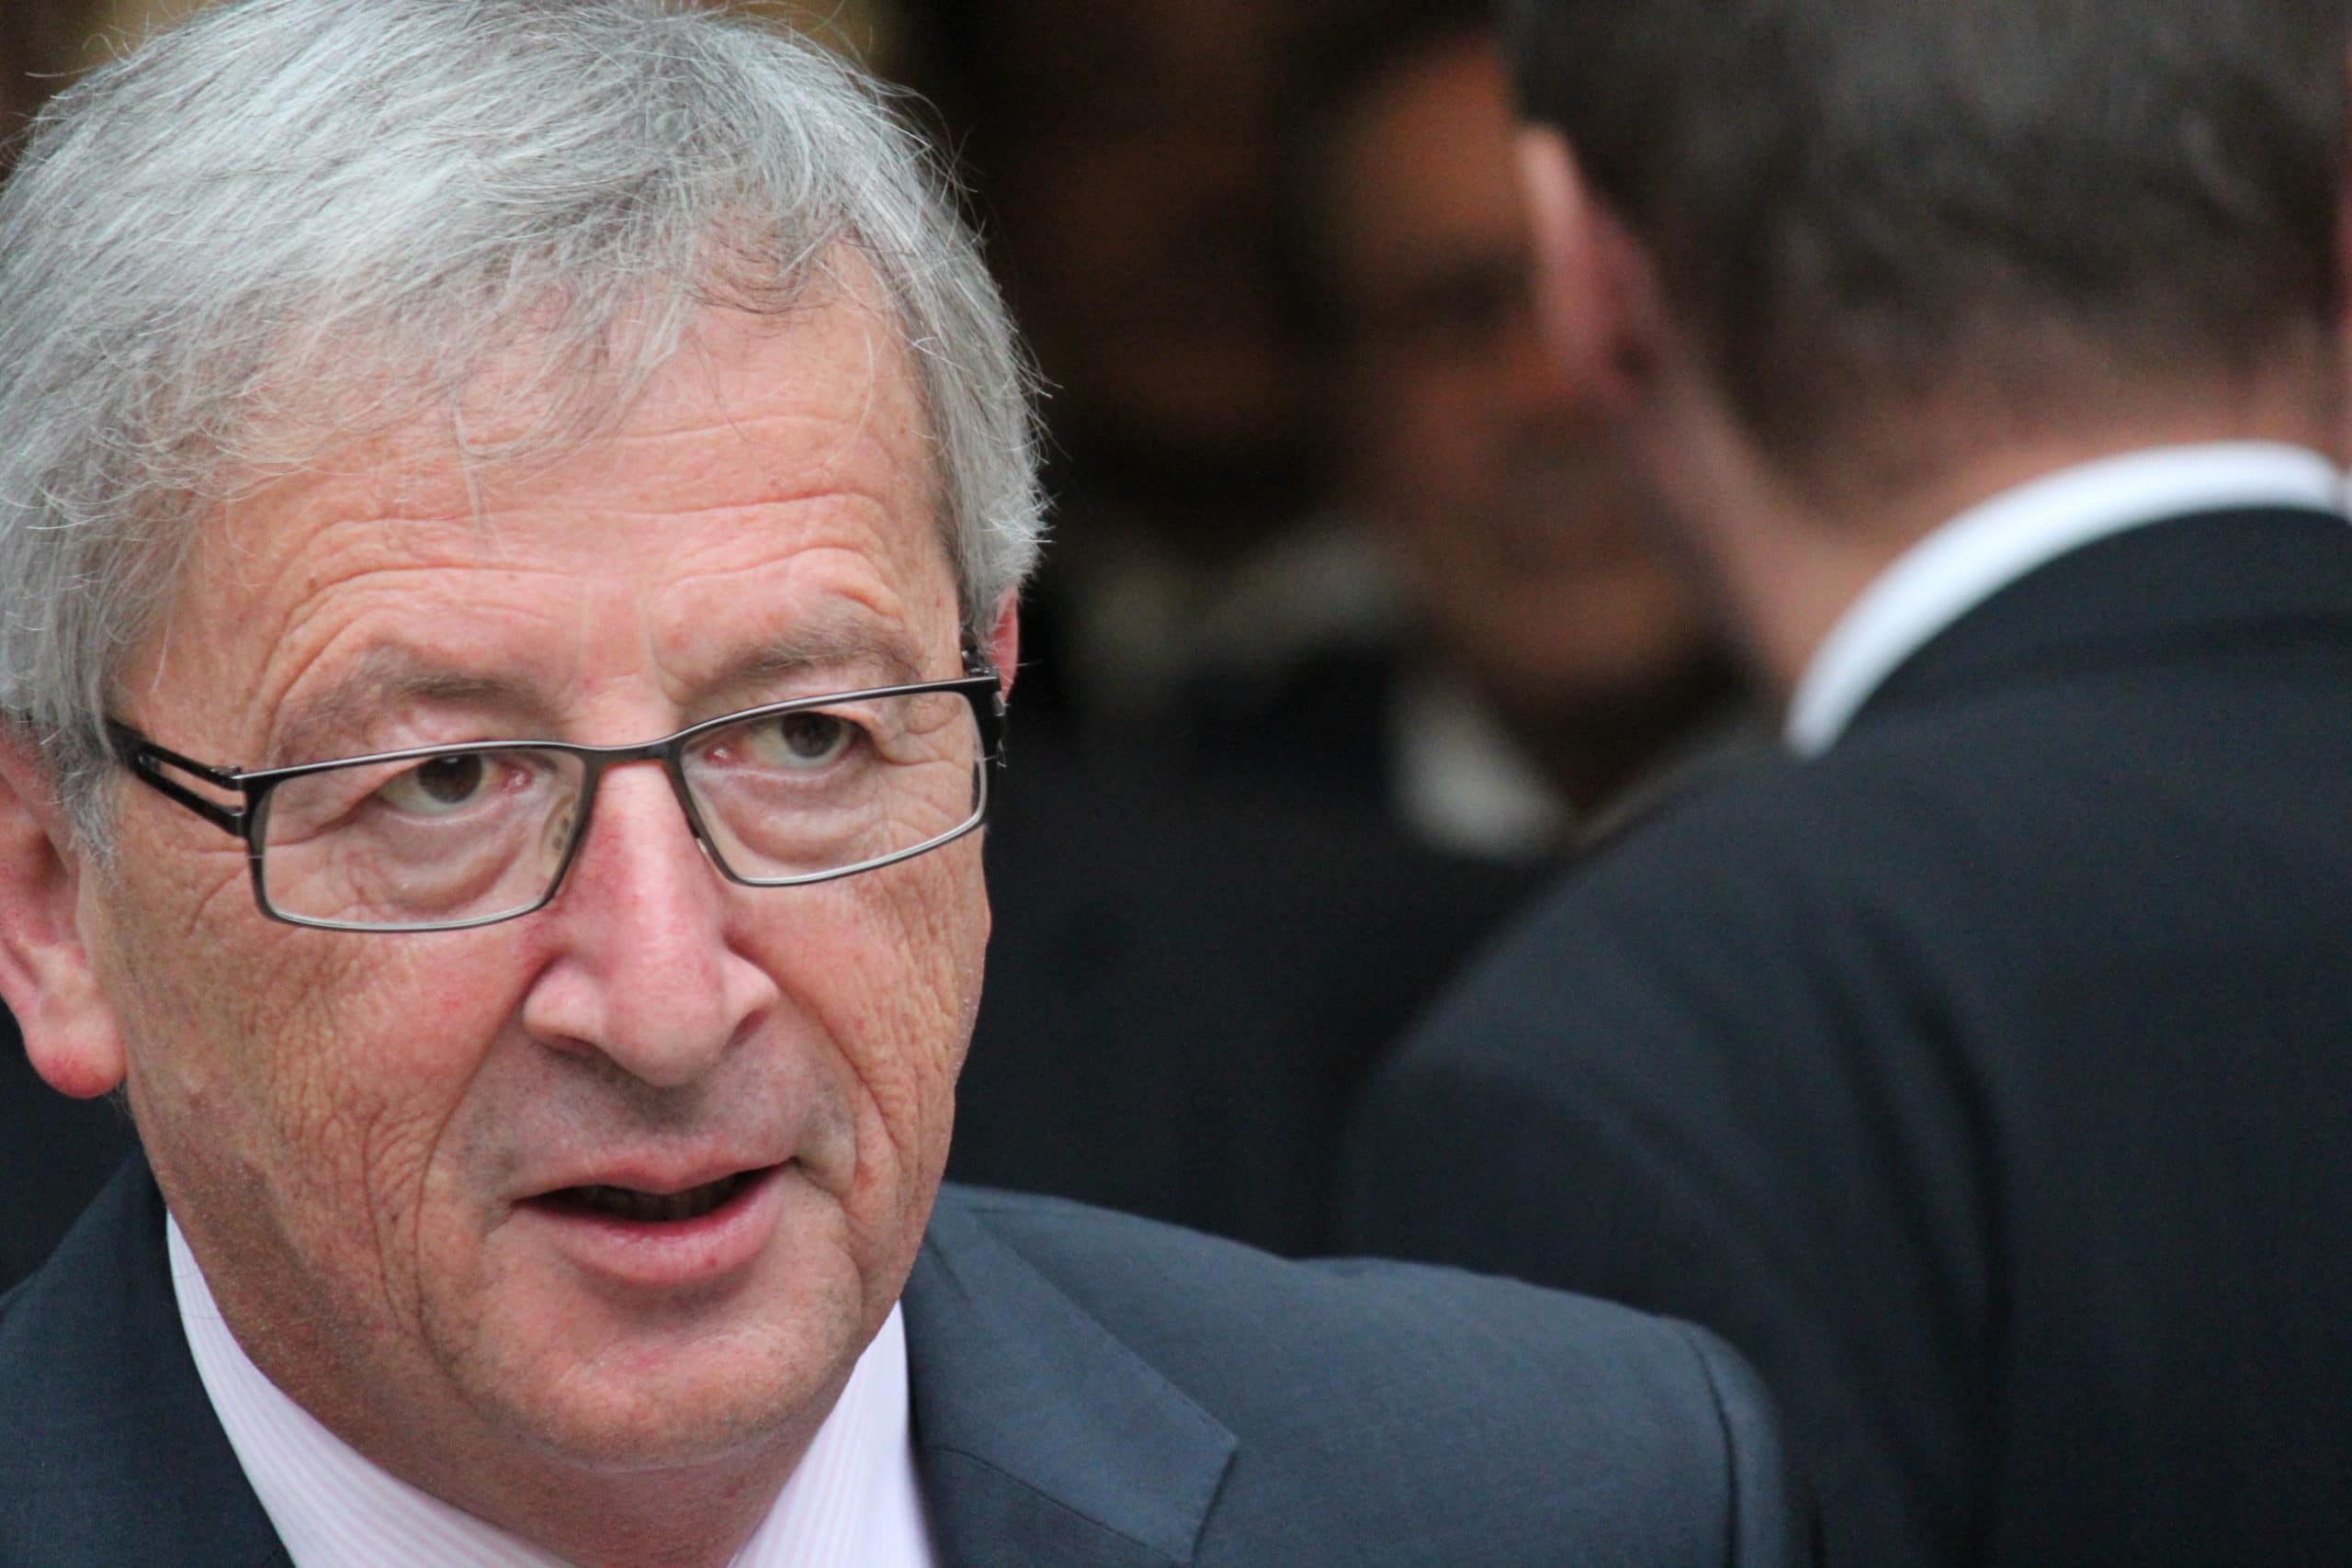 RREUSE urges Juncker not to withdraw waste package